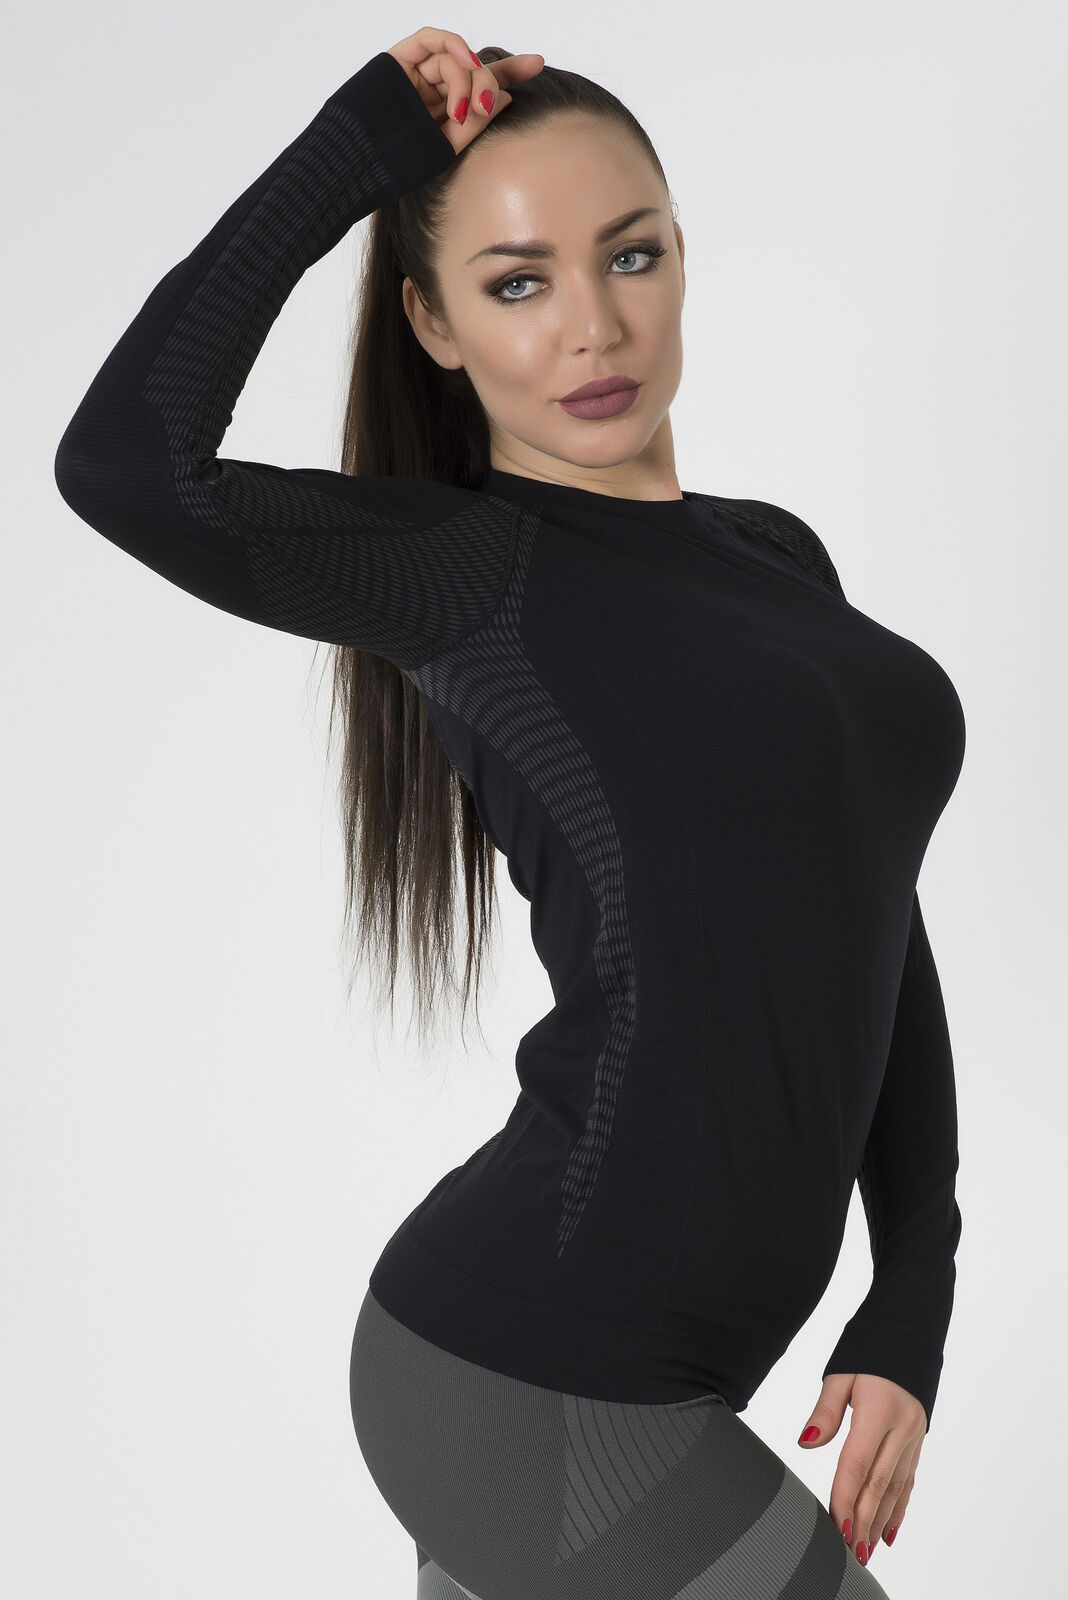 Bellissima-Women-039-s-Athletic-Compression-Long-Sleeve-Shirt-Moisture-Wicking-Top thumbnail 25